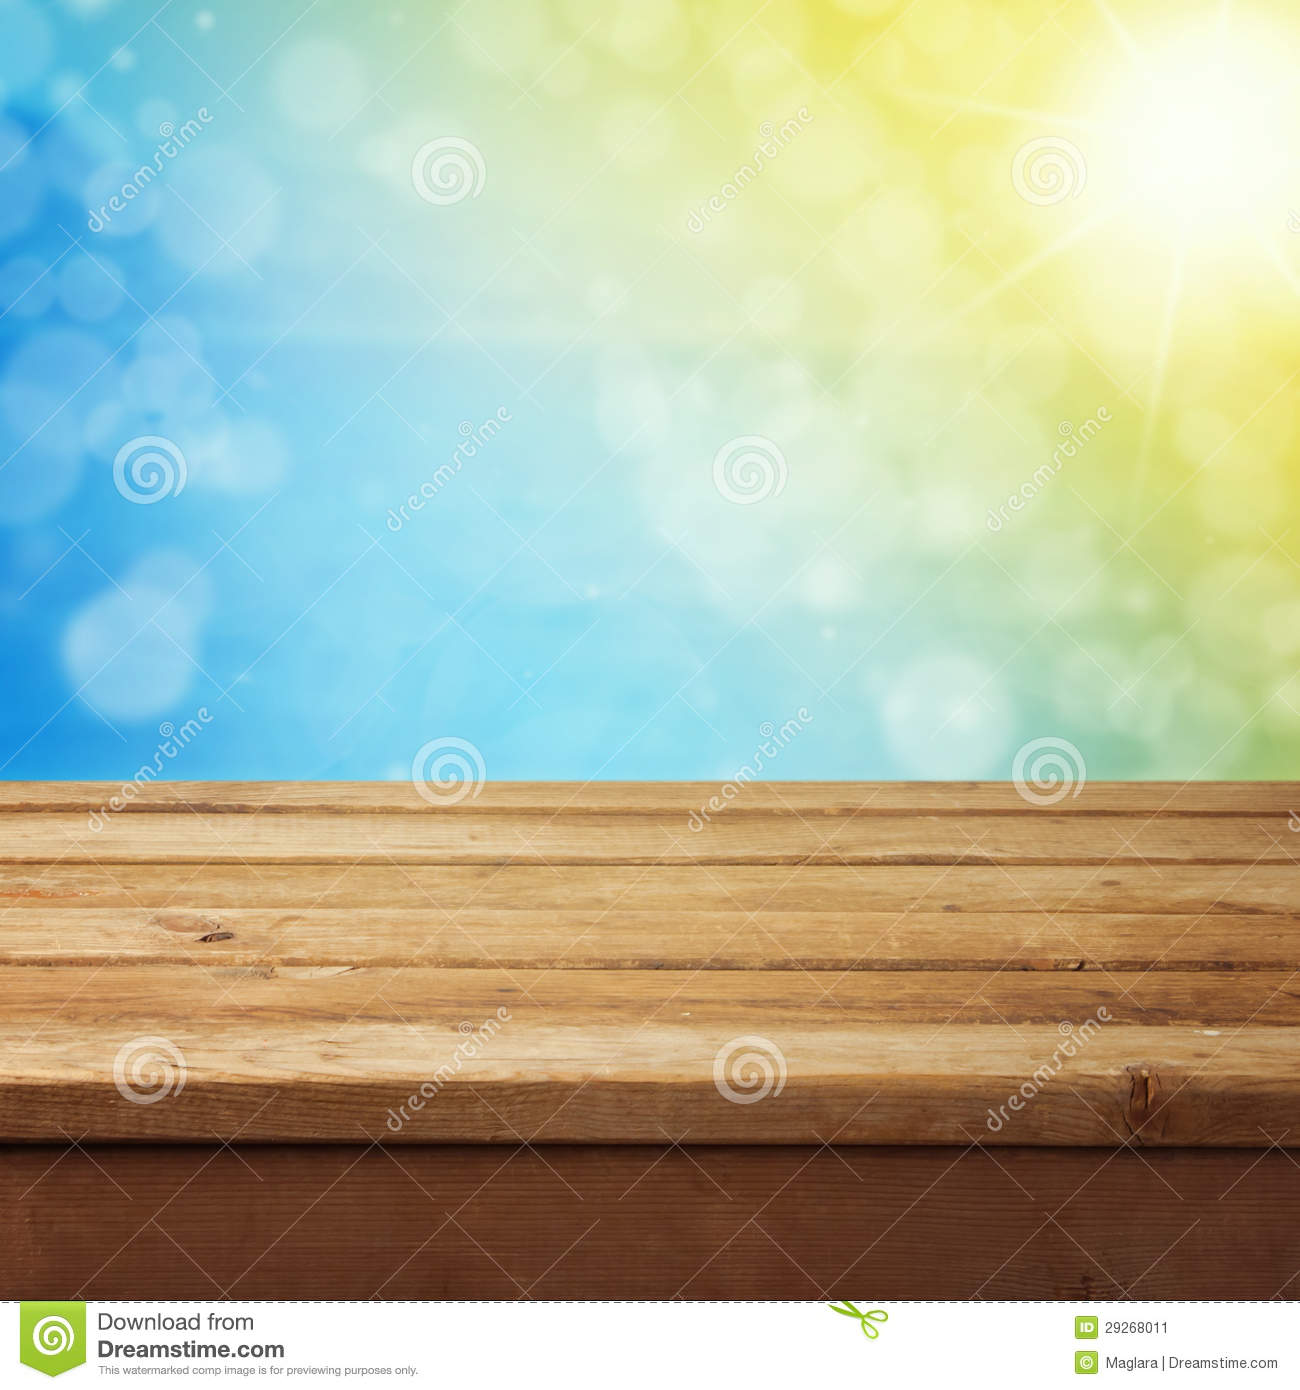 Background with wooden deck table stock image image for Table background